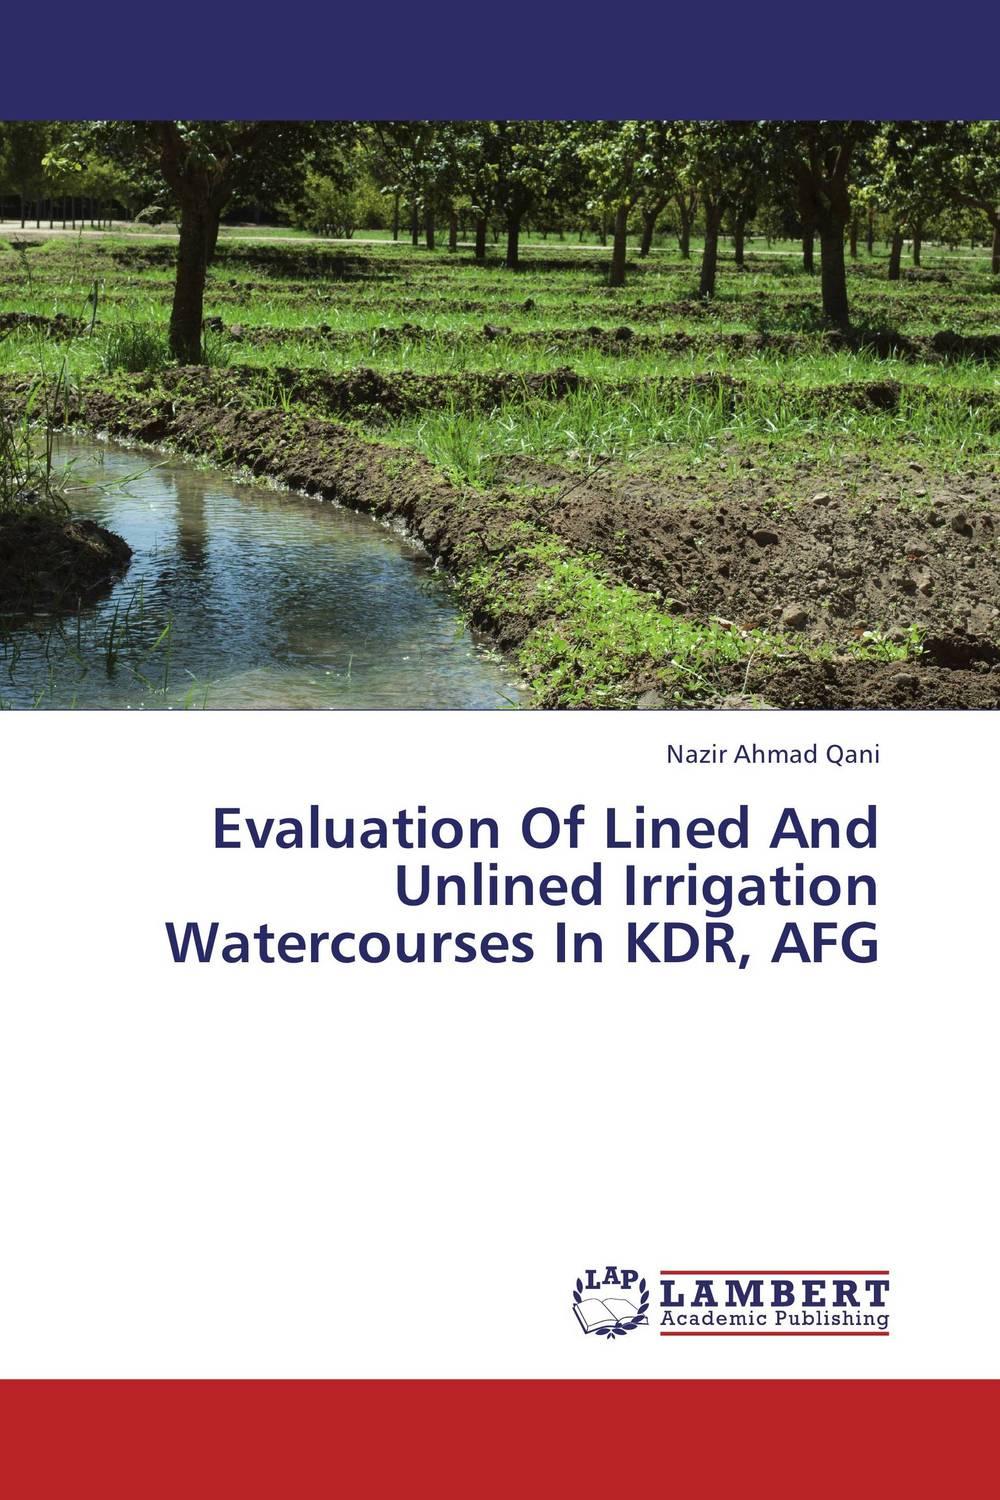 Evaluation Of Lined And Unlined Irrigation Watercourses In KDR, AFG afg mp002xw0e22i